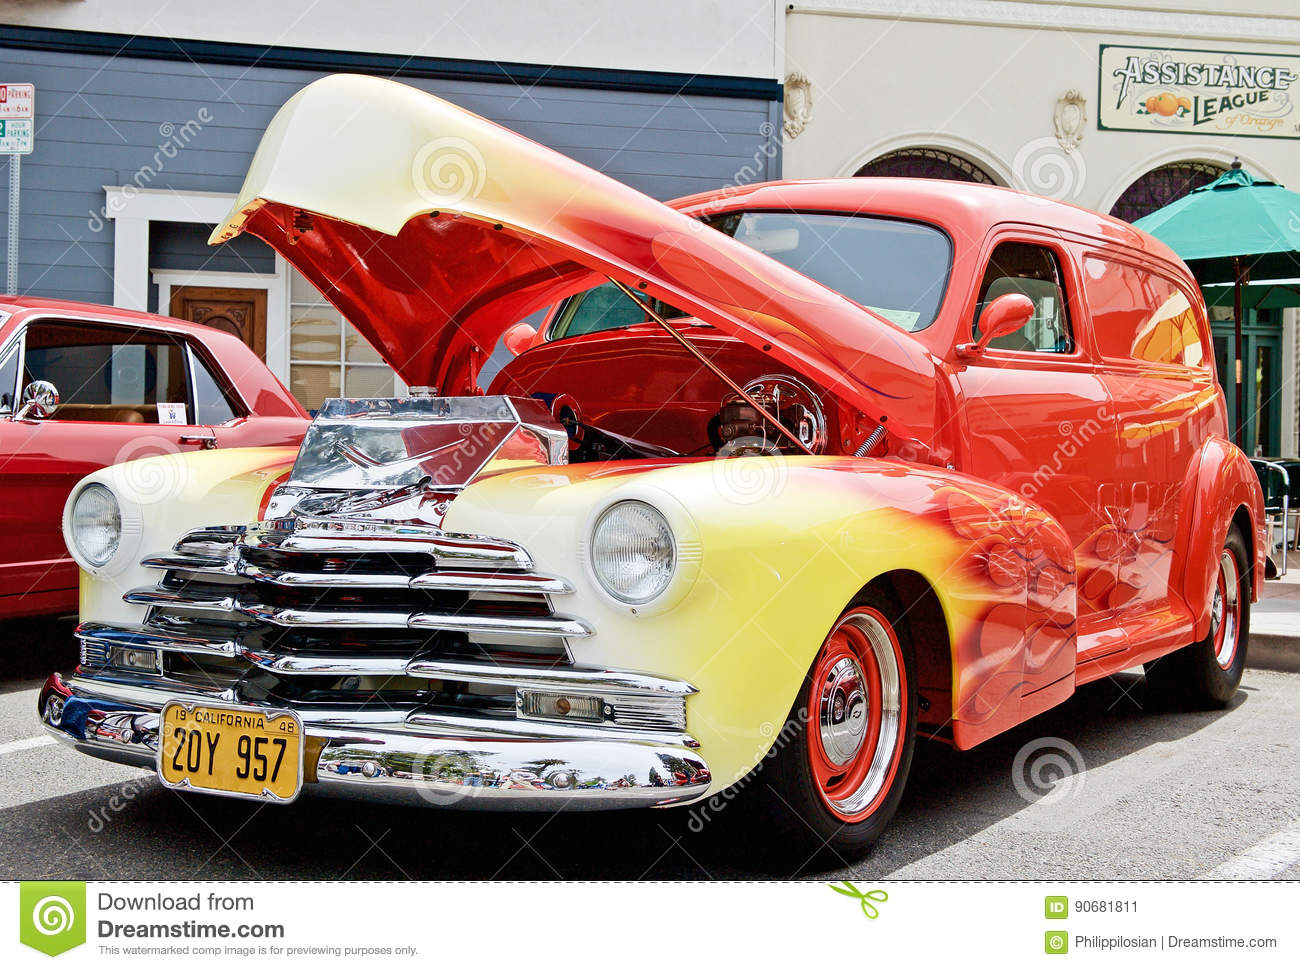 Truck 1948 chevy panel truck : Vintage 1948 Chevy Panel Truck Editorial Photo - Image: 90681811